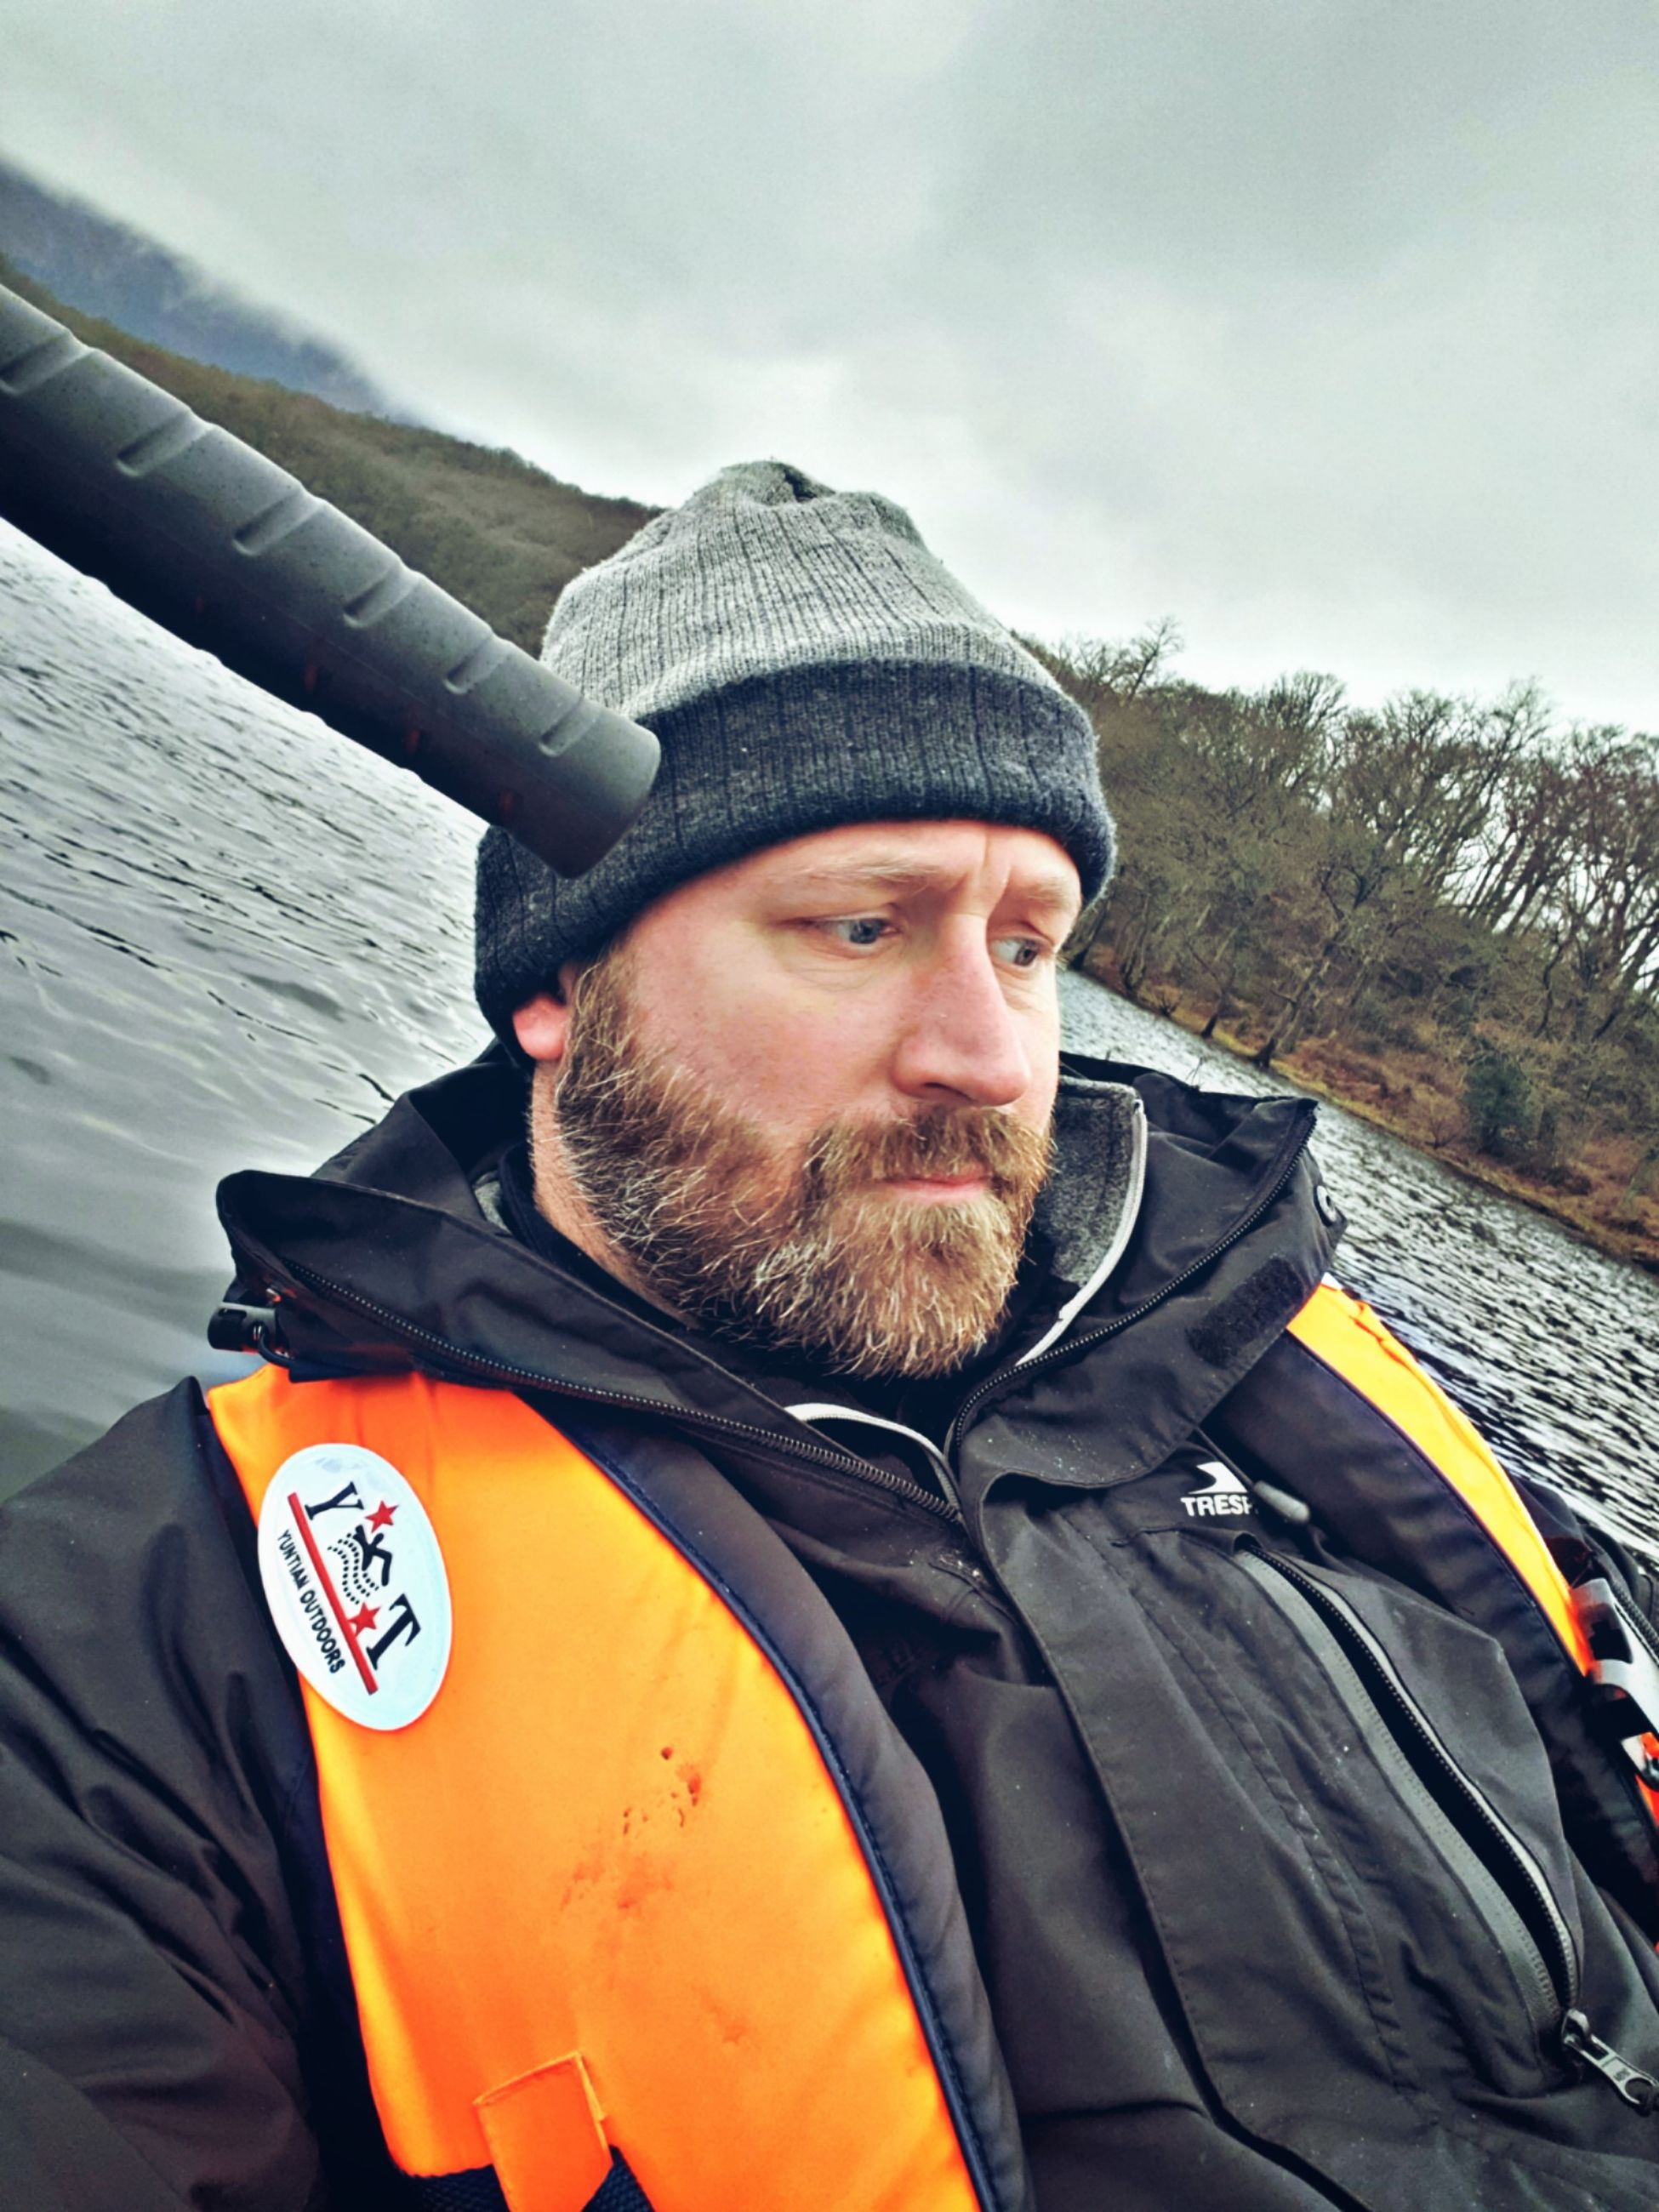 beard, one person, facial hair, clothing, portrait, real people, looking at camera, hat, men, leisure activity, adult, males, lifestyles, water, mid adult, nature, warm clothing, young adult, mature men, outdoors